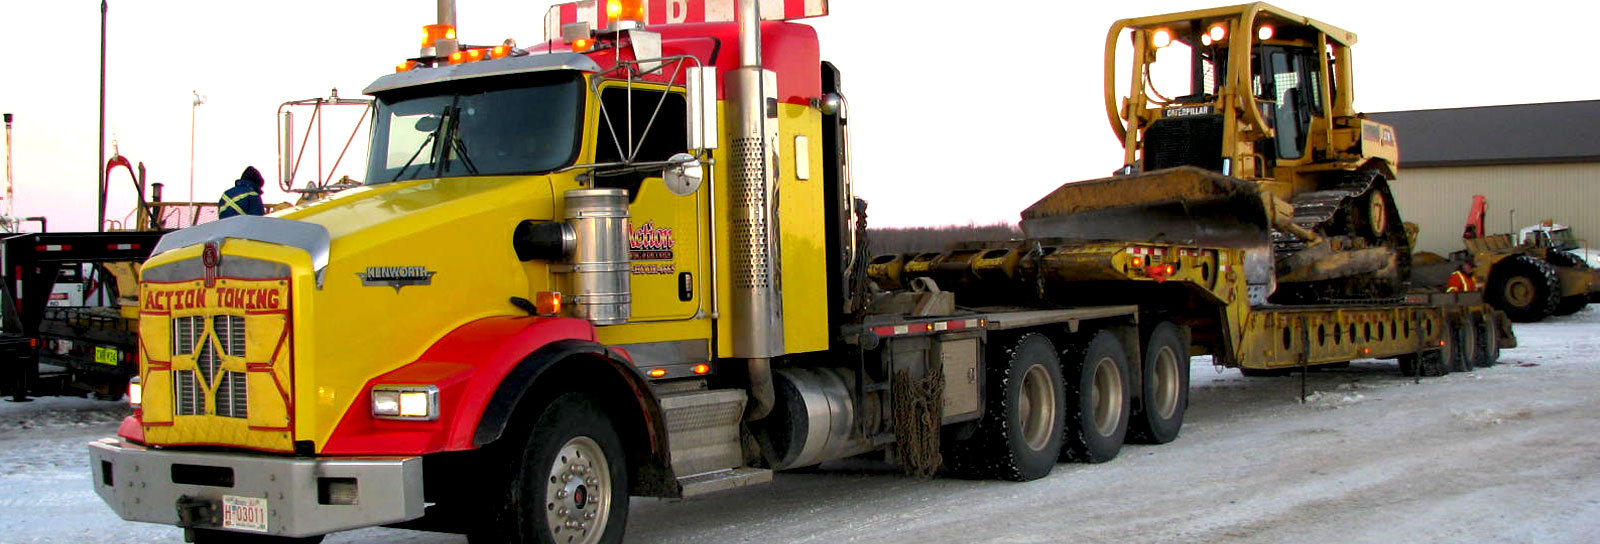 Action-Towing-Heavy-Duty-Equipment